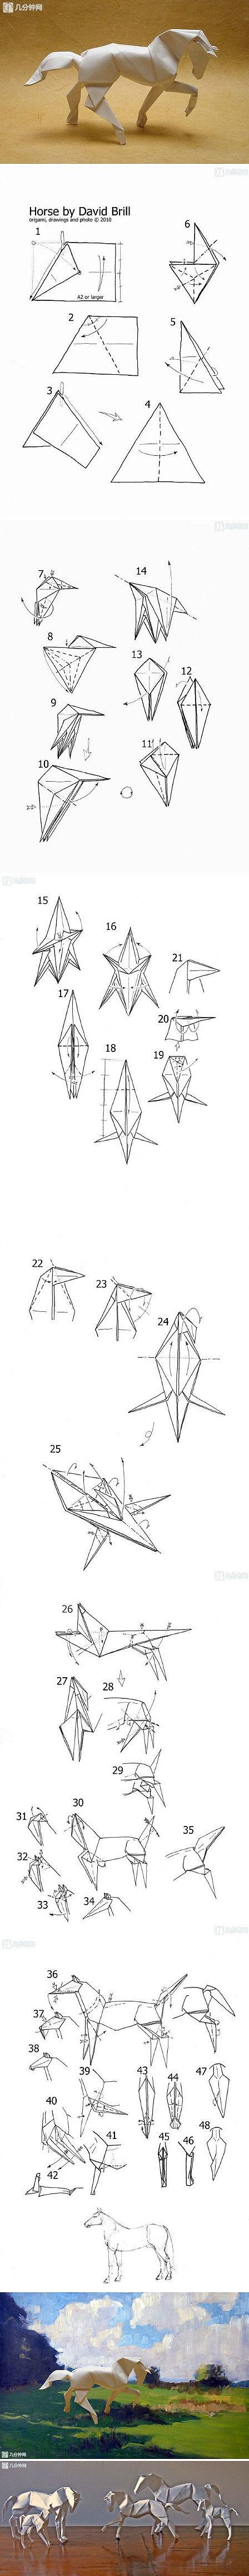 David Brill's Origami Horse - diagram instructions